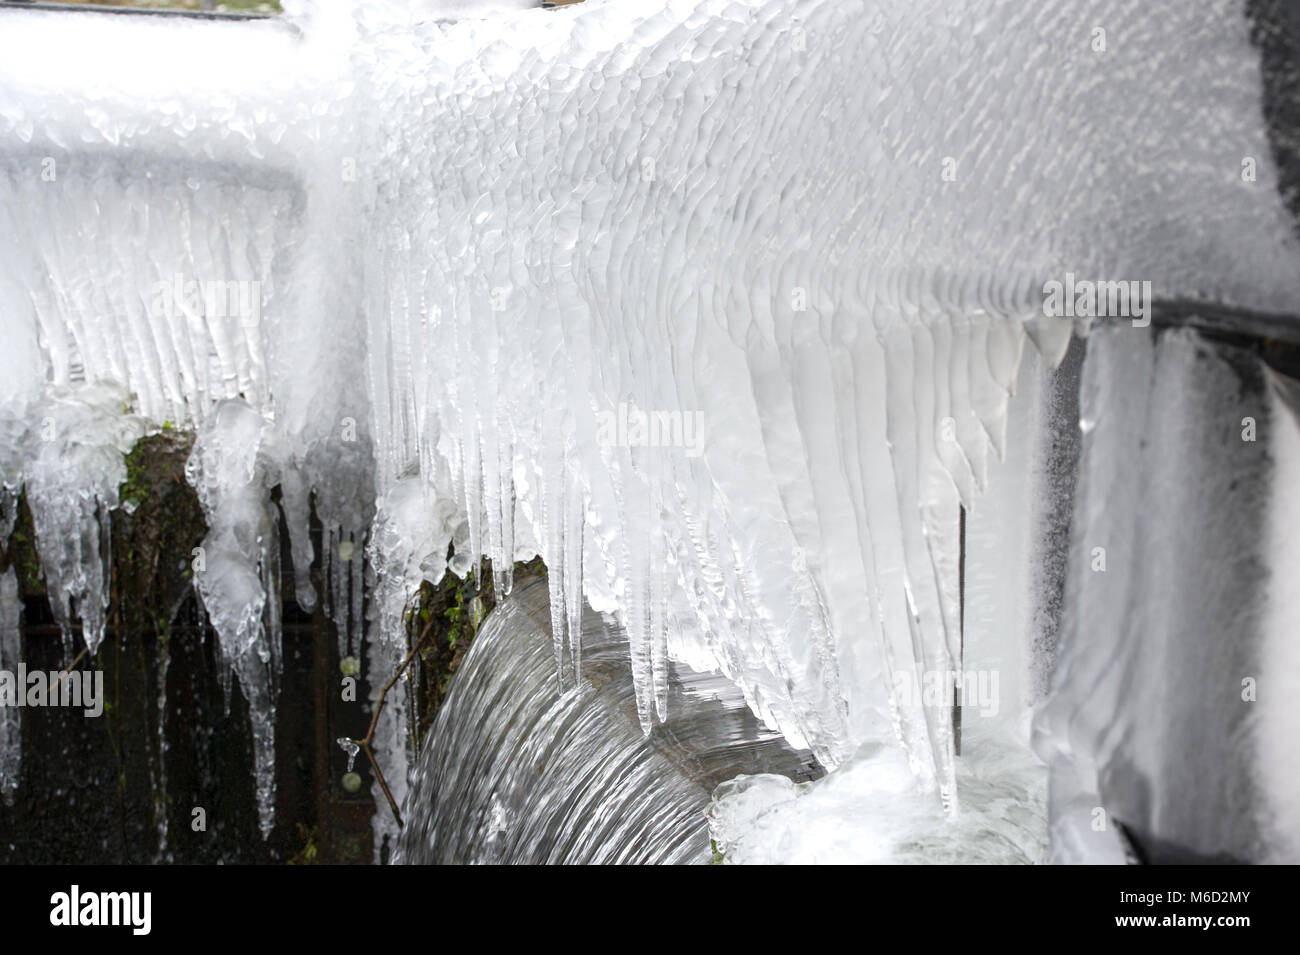 Wansford, East Yorkshire, UK. 2nd Mar, 2018. Water spray forming into large Icicles over a lock on Driffield Canal - Stock Image